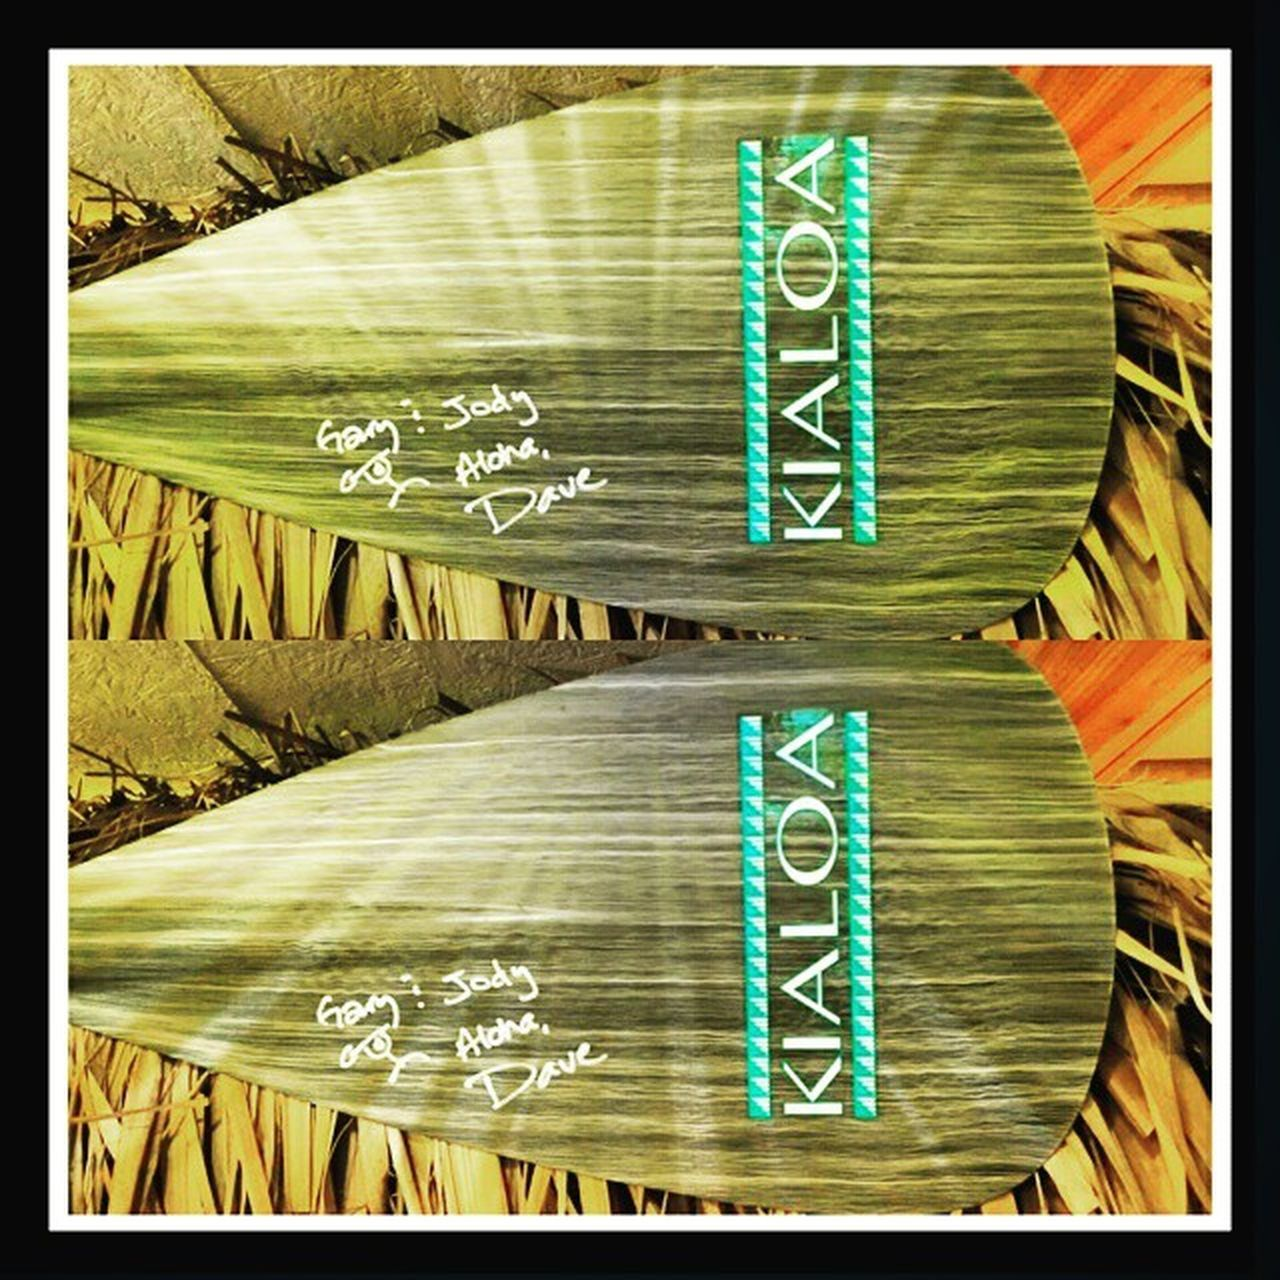 Kialoapaddles DaveChun Thanks to Dave Chun designer @ Kialoa Paddle for the signed paddle. To Gary from JimmyFordsBoards & Jody from Sistersofthesunyoga @stand_up_paddle @stand.up.paddle 27north Surprisepaddle Paddleboarding Watersport FitnessFreak Exercise Fun